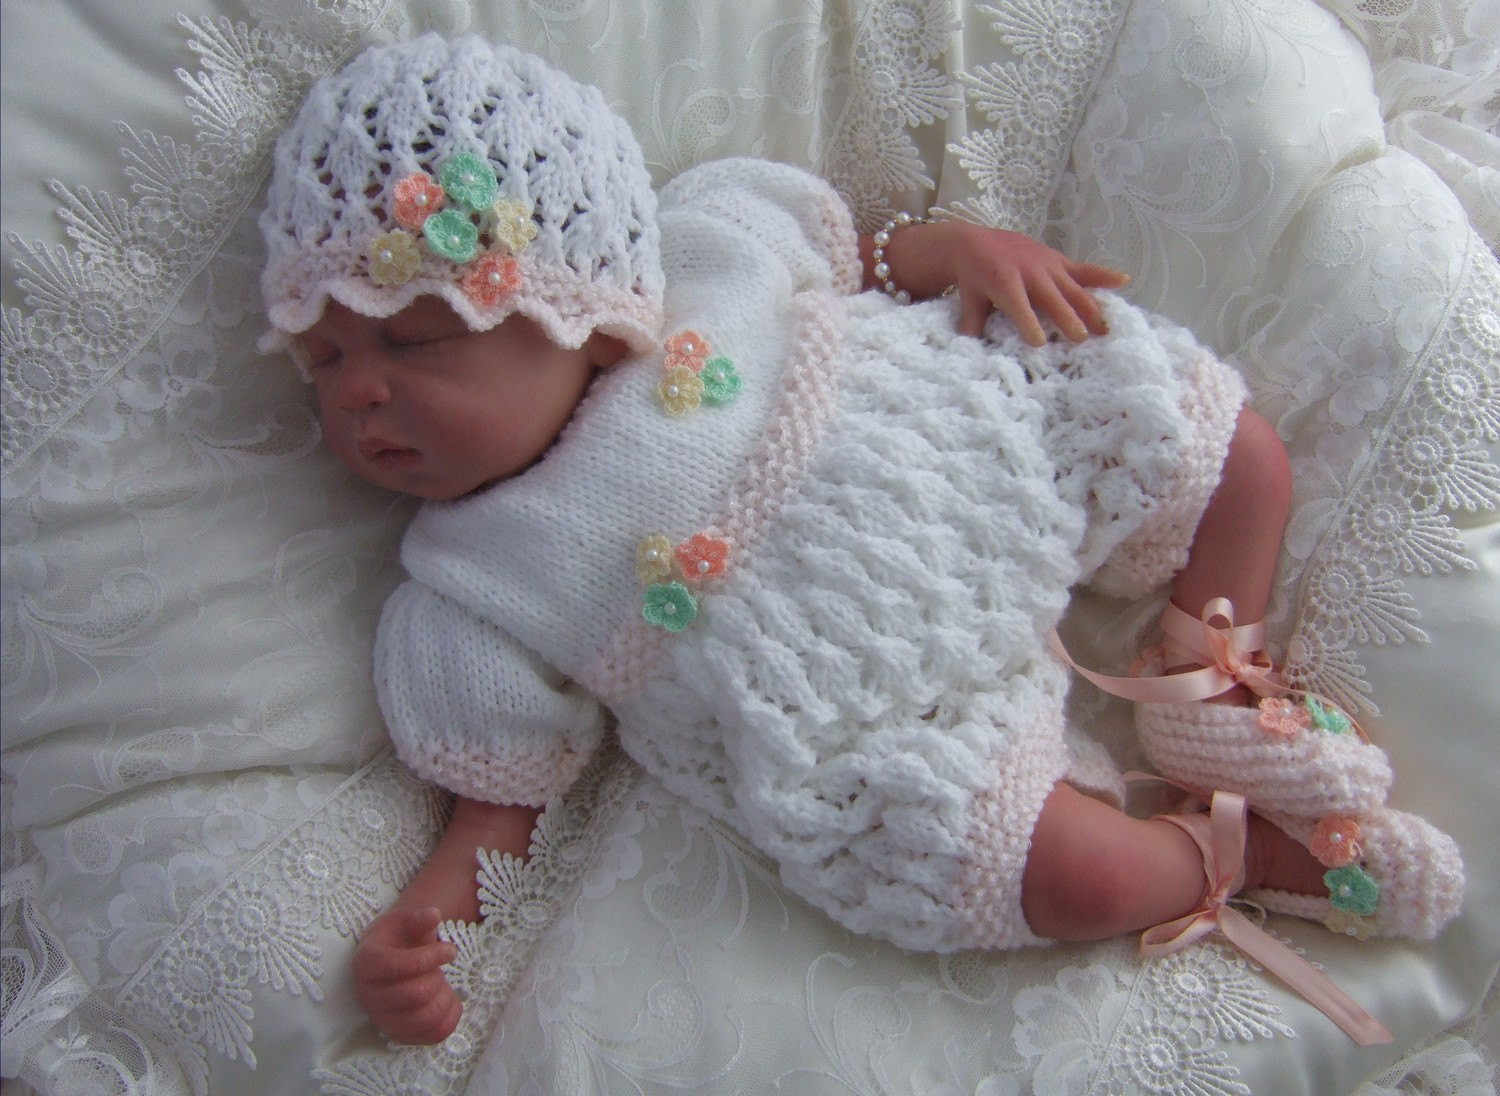 Knitting Patterns for toddlers Awesome Baby Knitting Pattern Amelia Reborn Baby Dolls Download Of Awesome 49 Images Knitting Patterns for toddlers